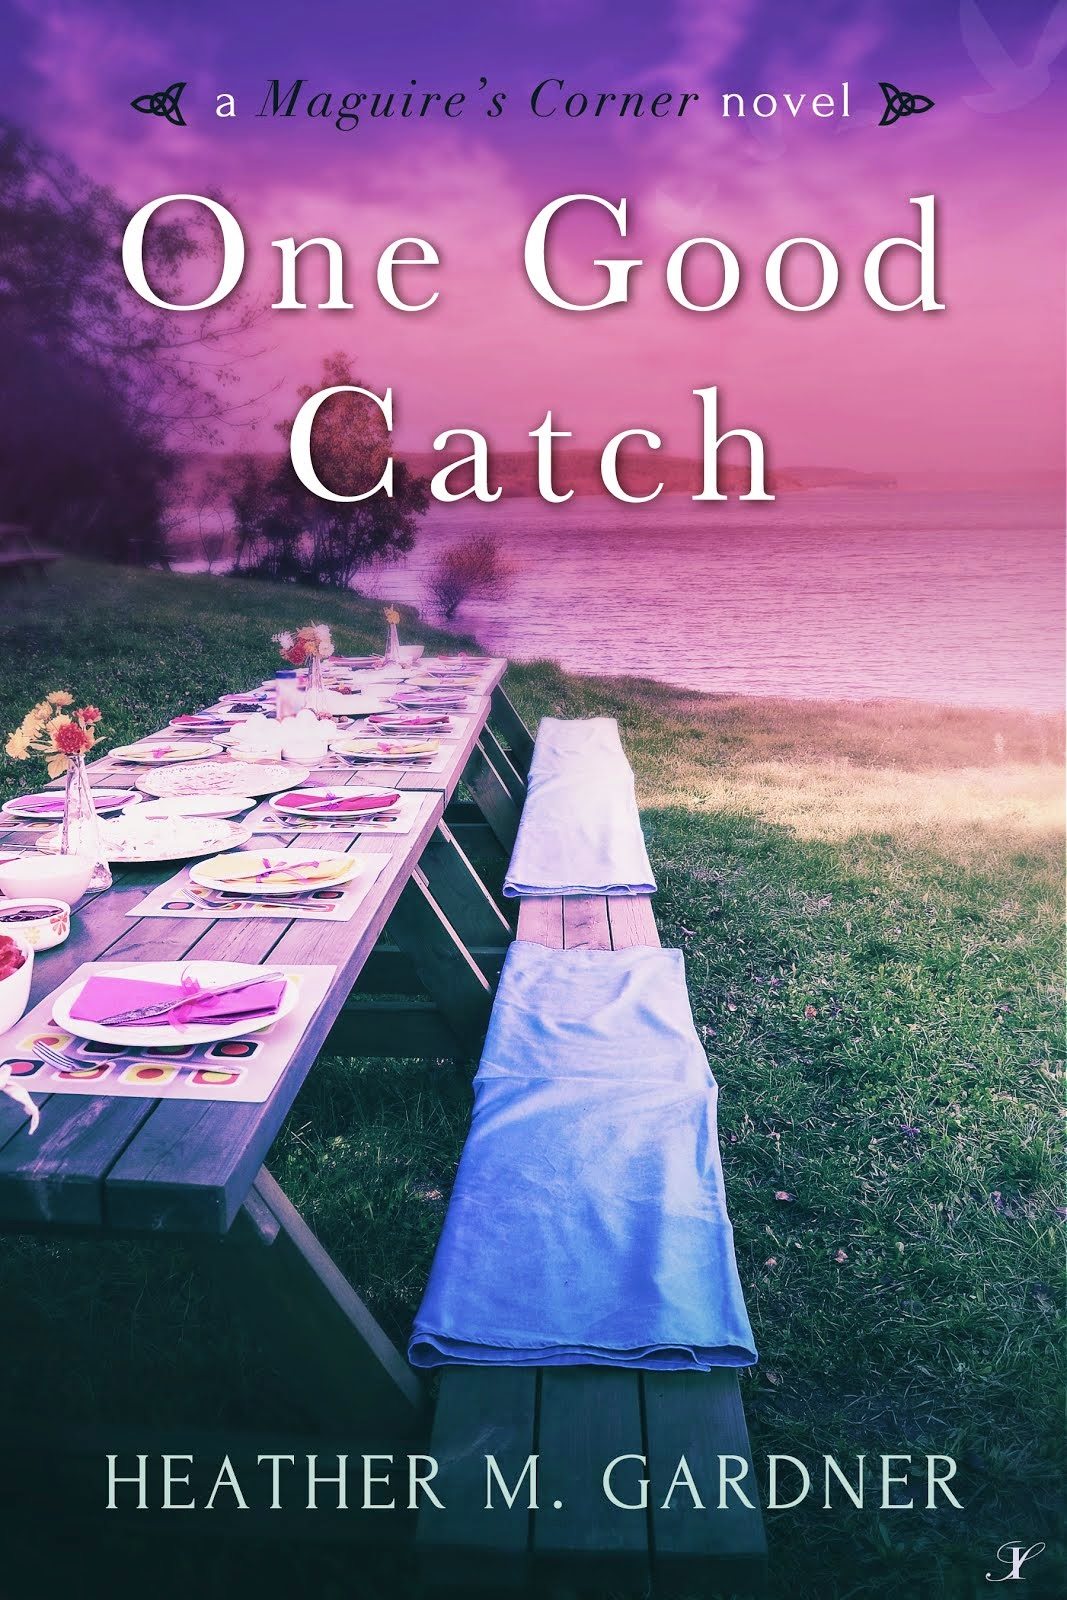 One Good Catch, A Maguire's Corner novel